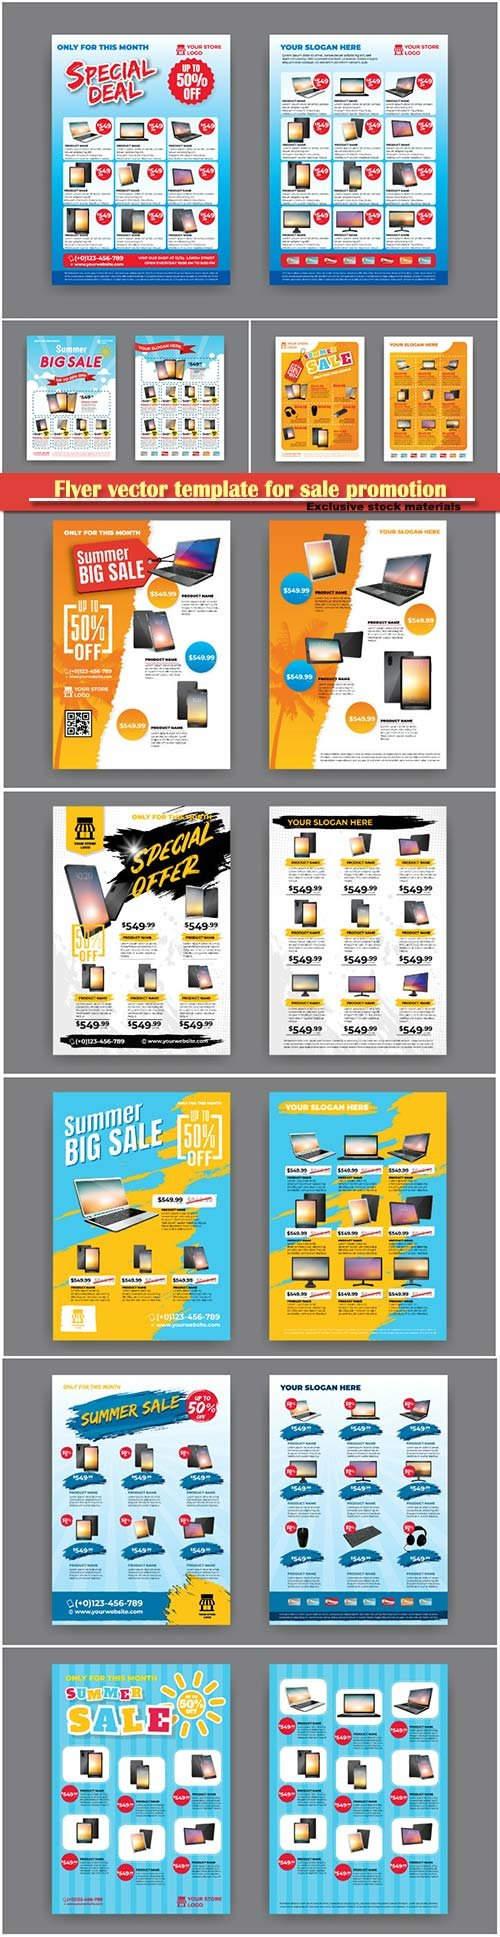 Flyer vector template for sale promotion